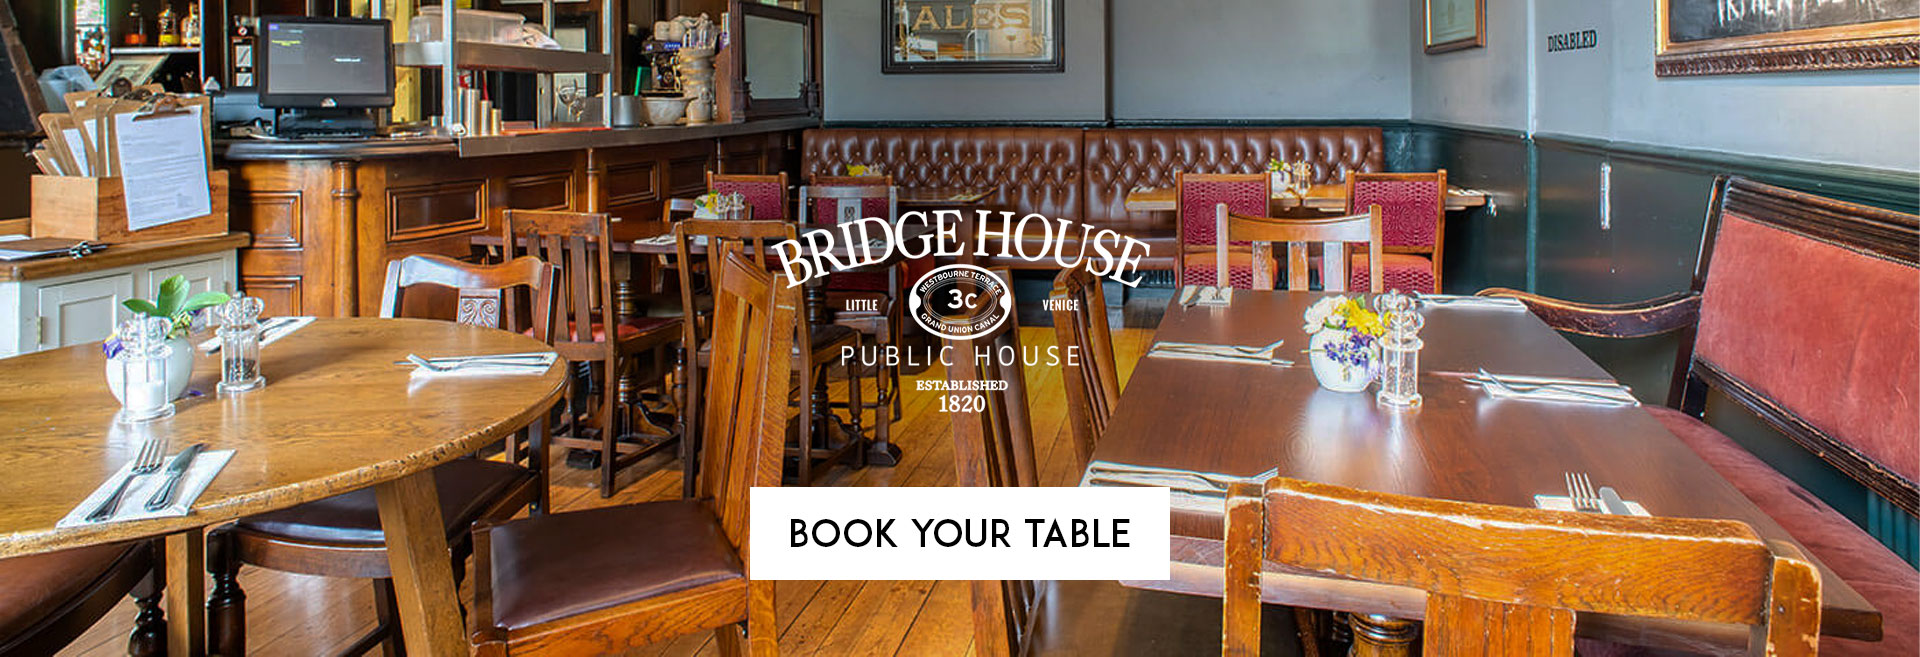 Book Your Table at The Bridge House